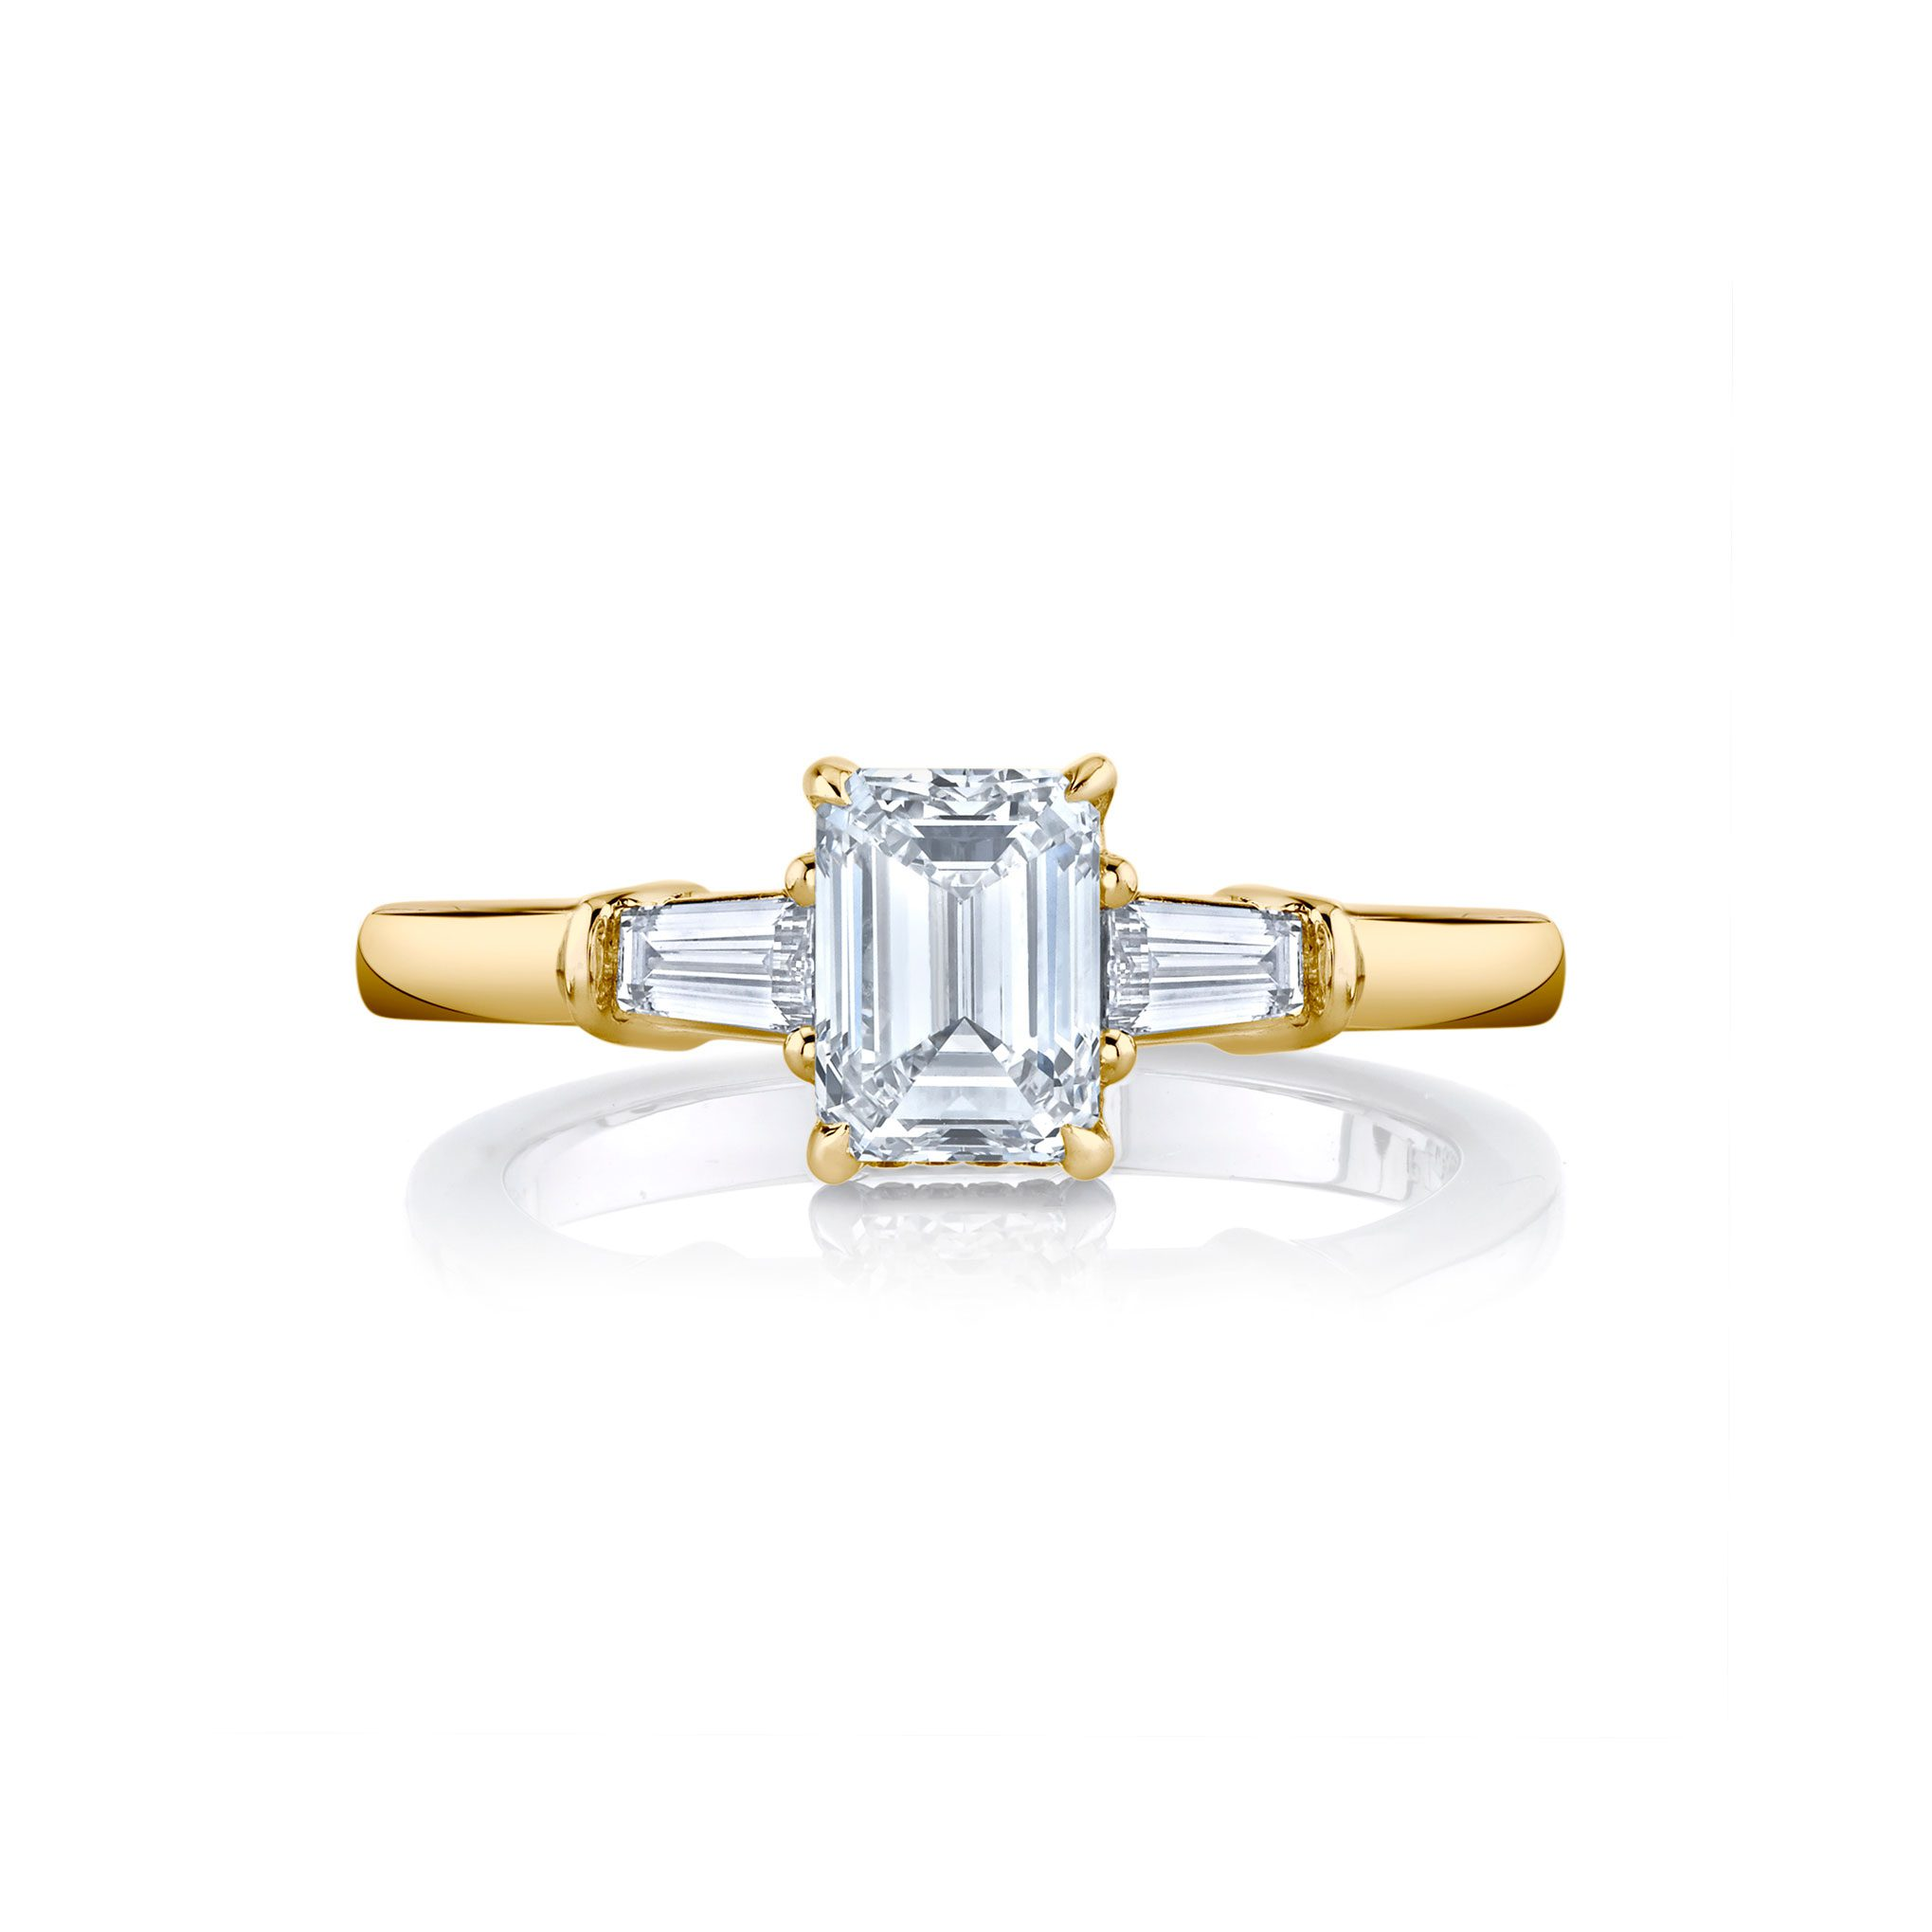 Claire Emerald Three Stone Engagement Ring with tapered baguette diamond side stones in 18k Yellow Gold Front View by Oui by Jean Dousset